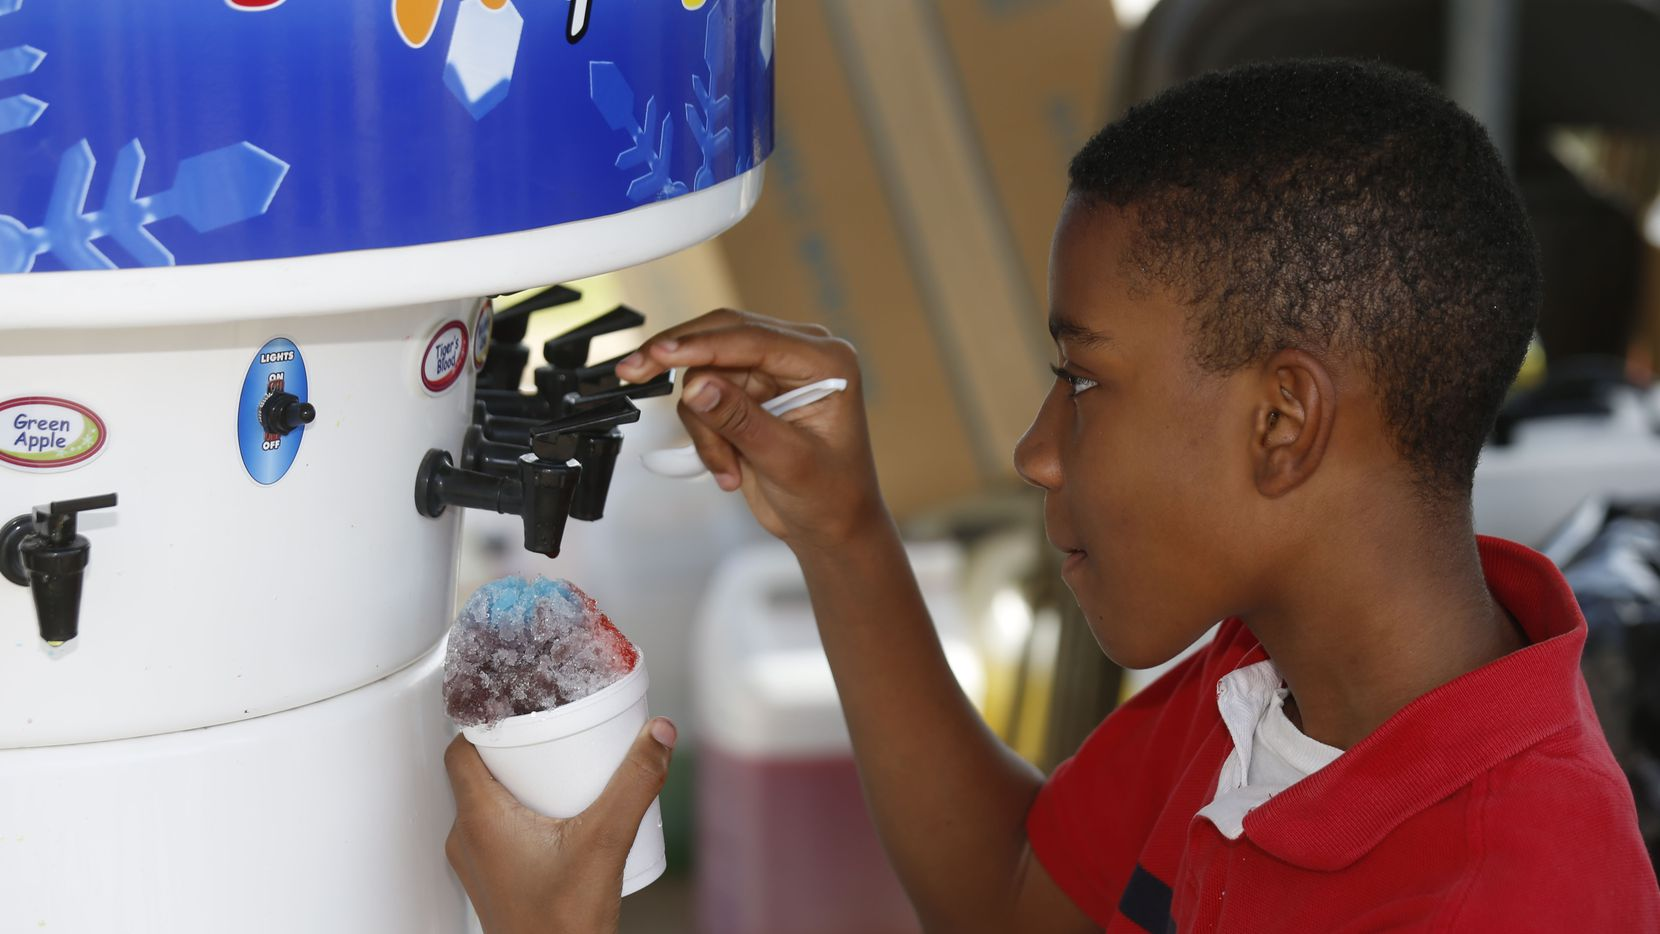 Ashton Smith, 12, makes a custom snow cone at the Snowie Southwest Shaved Ice Snow Cones booth during Taste of Irving at Cimarron Park Recreation Center Saturday May 20, 2017.  The event also offered a fun zone, craft marketplace and live music.